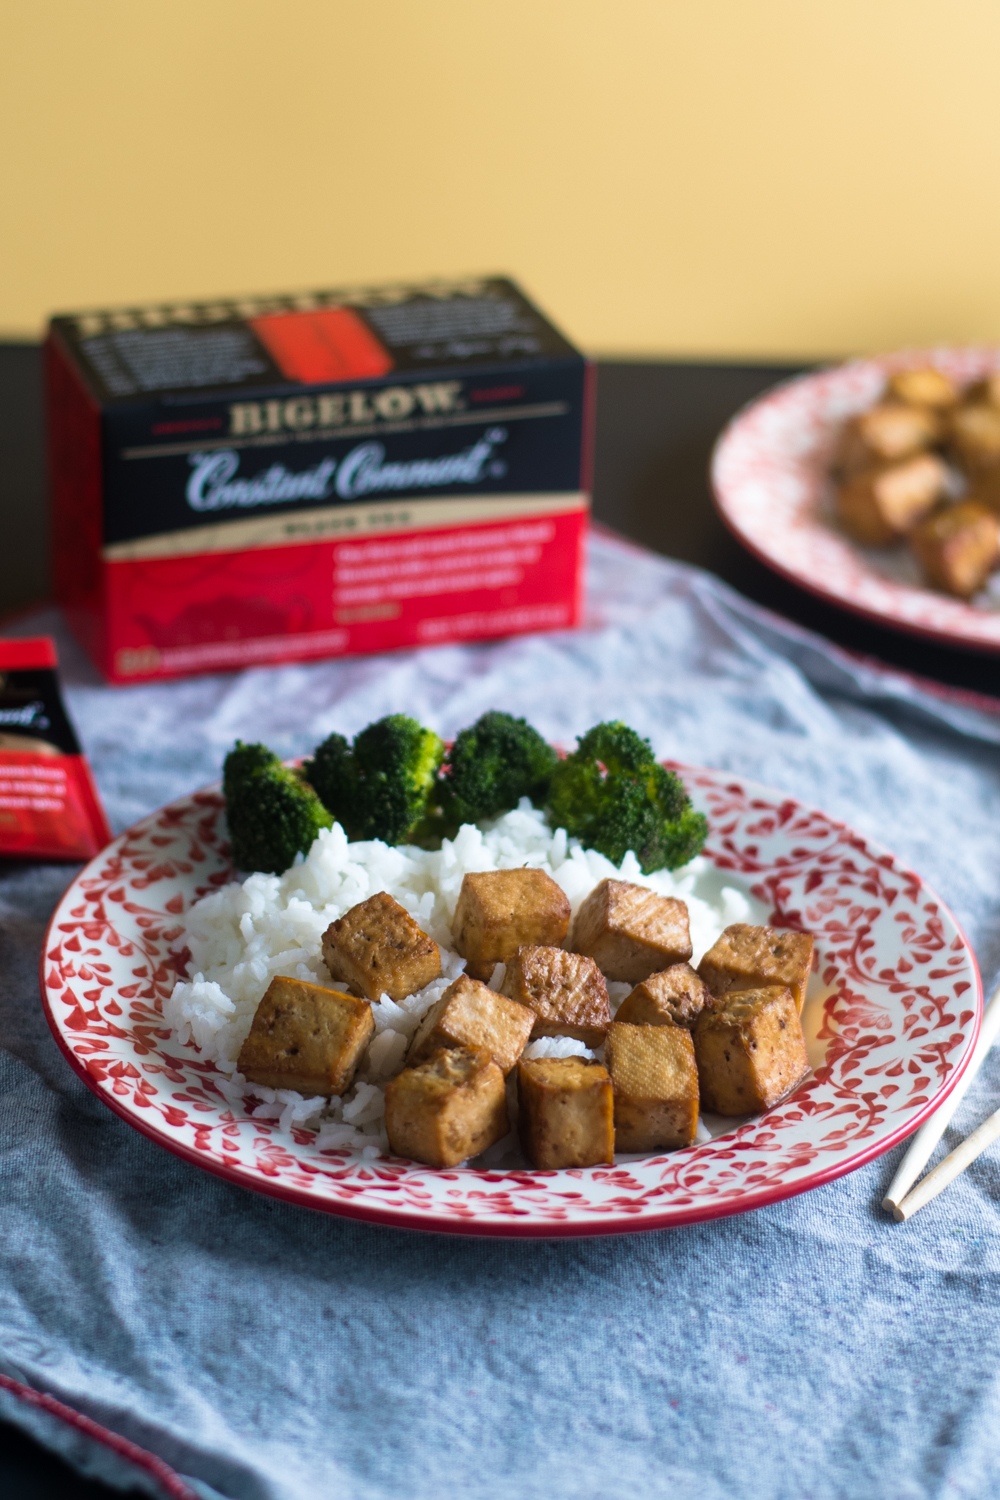 Tea makes a flavorful marinade base for tofu. This baked tofu is packed with flavor!